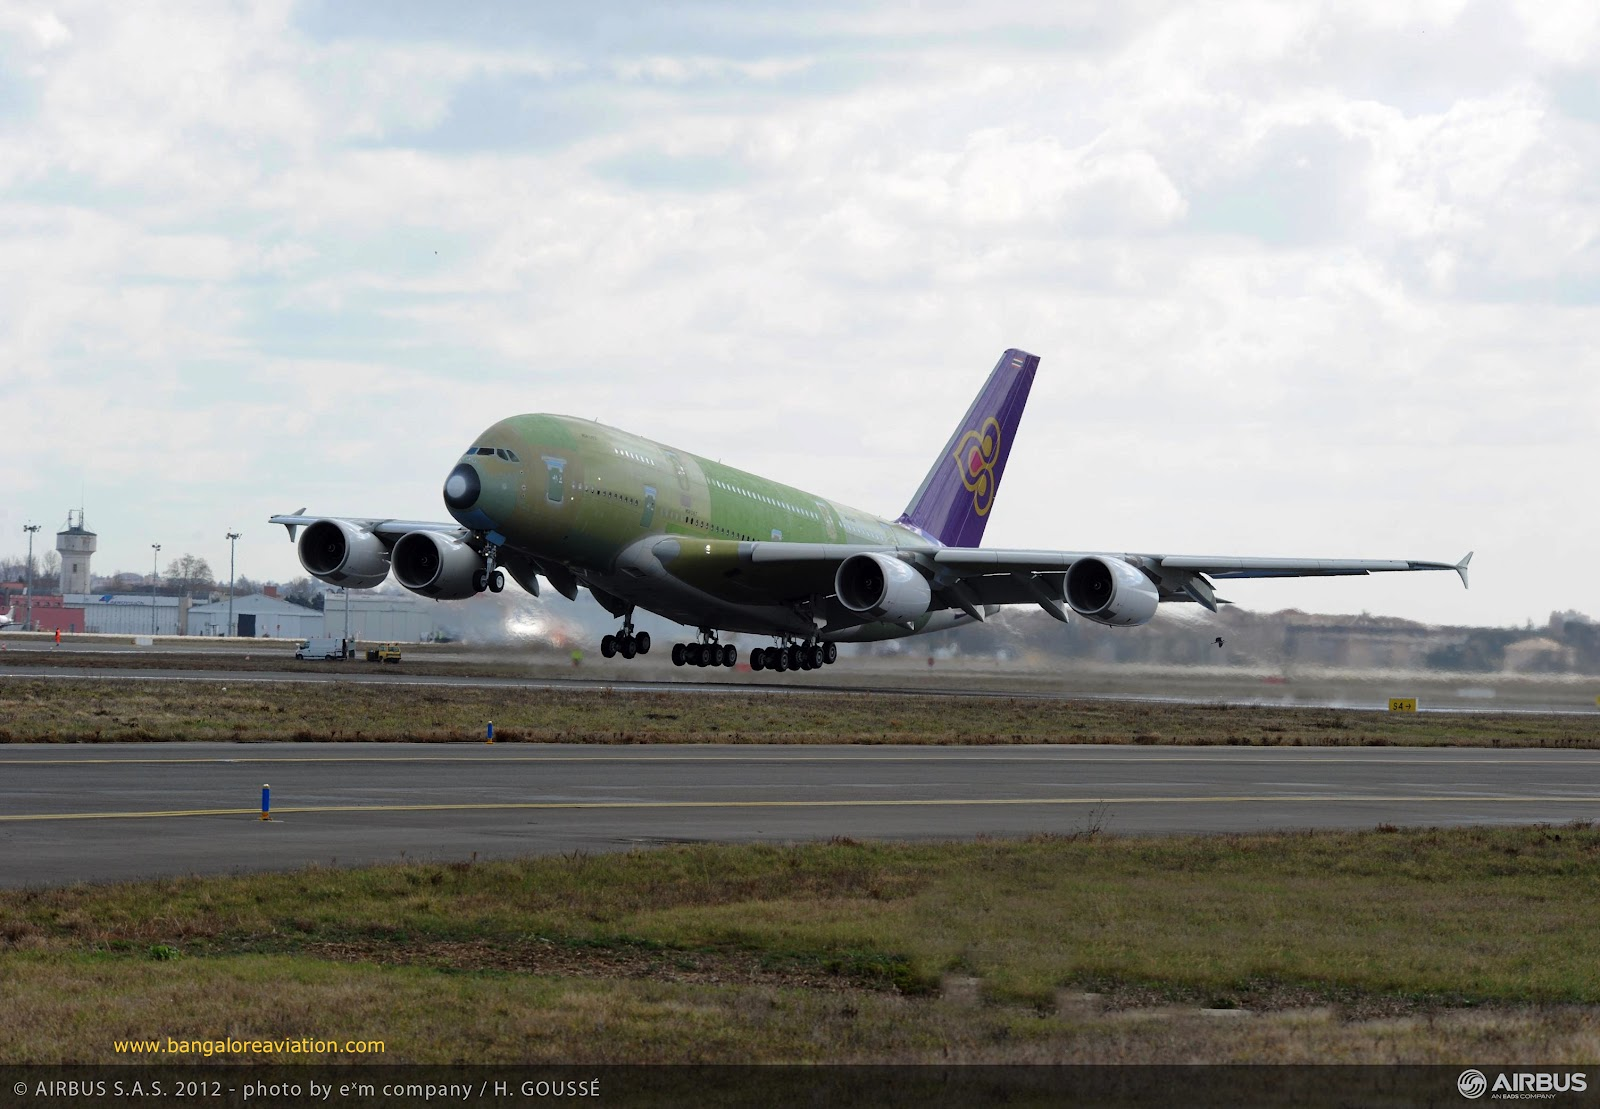 Thai Airways Airbus A380 first flight